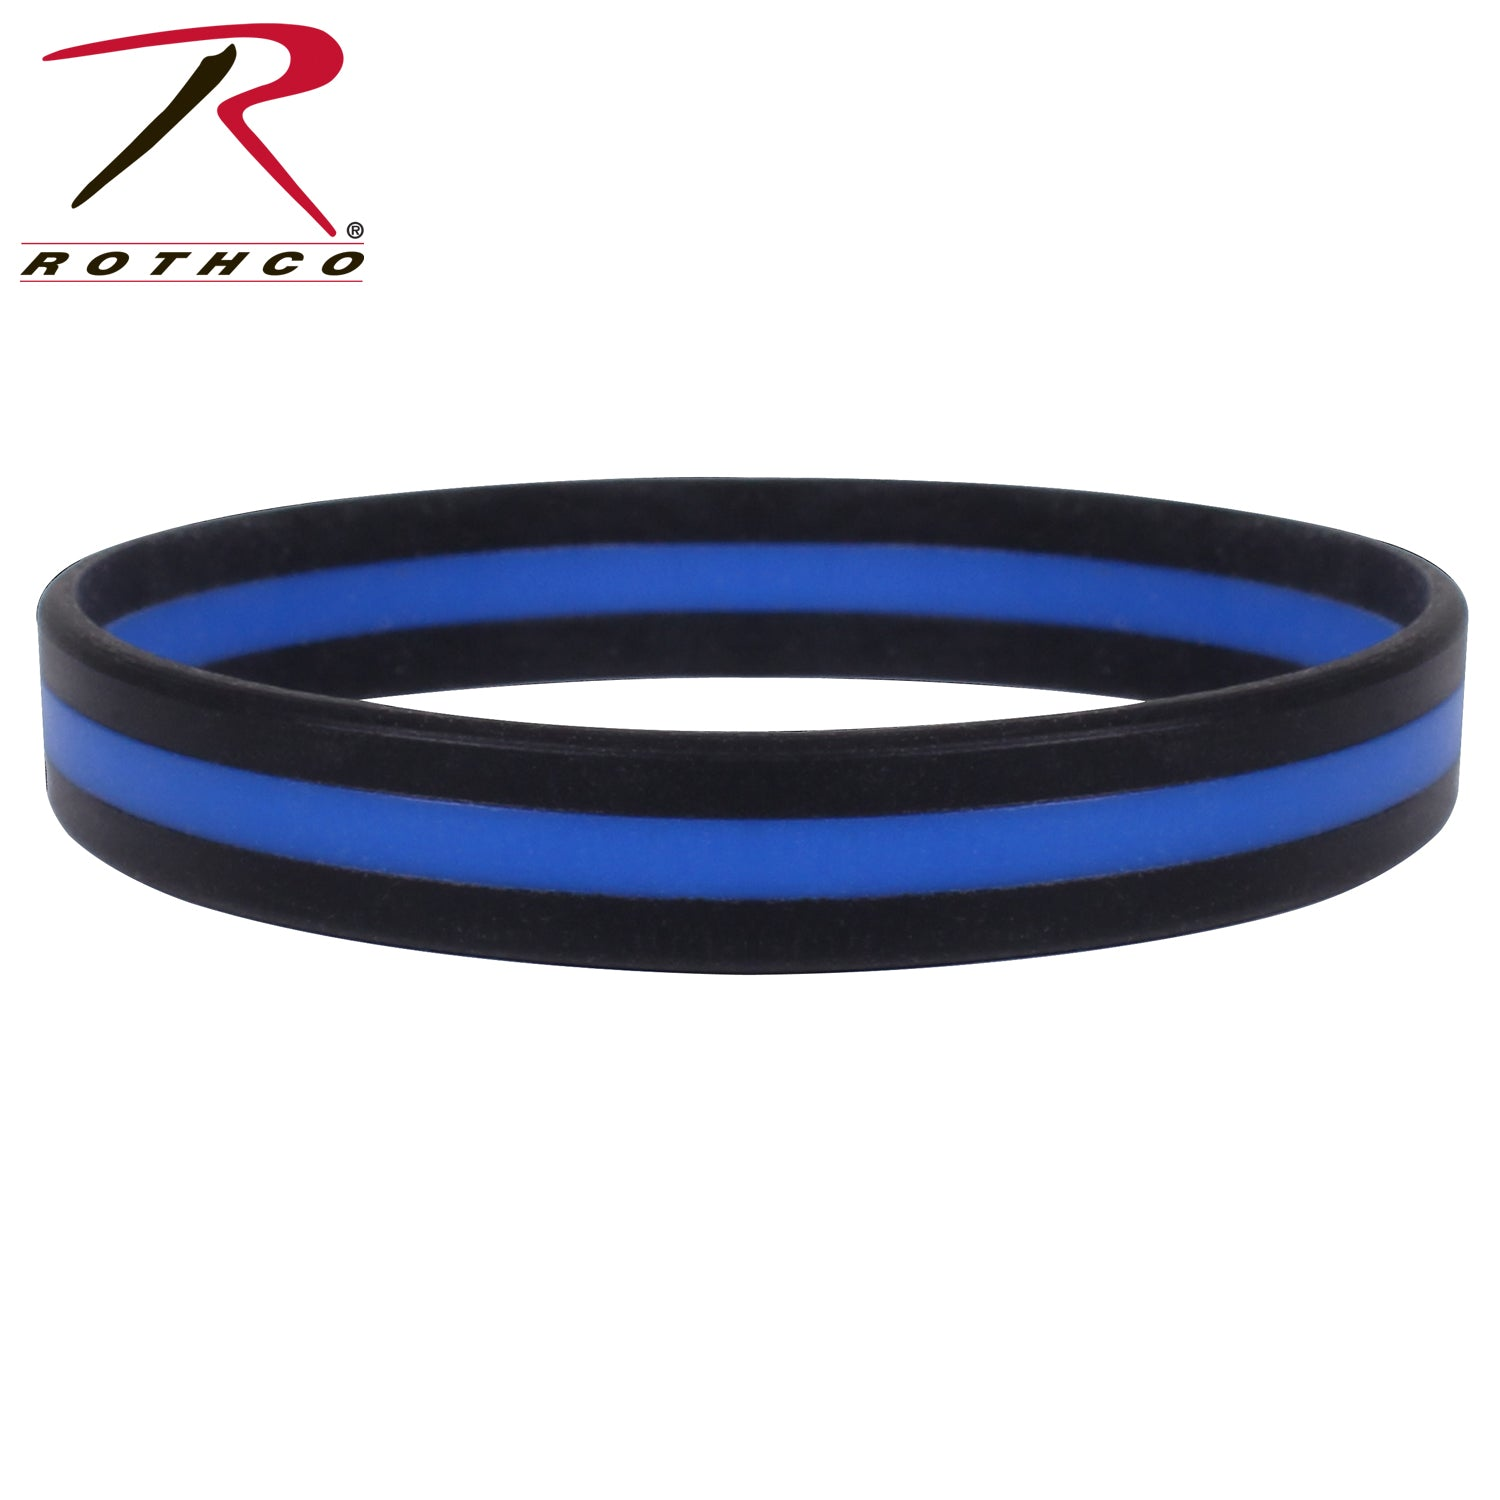 Rothco Silicone Thin Blue Line Bracelet - red-diamond-uniform-police-supply